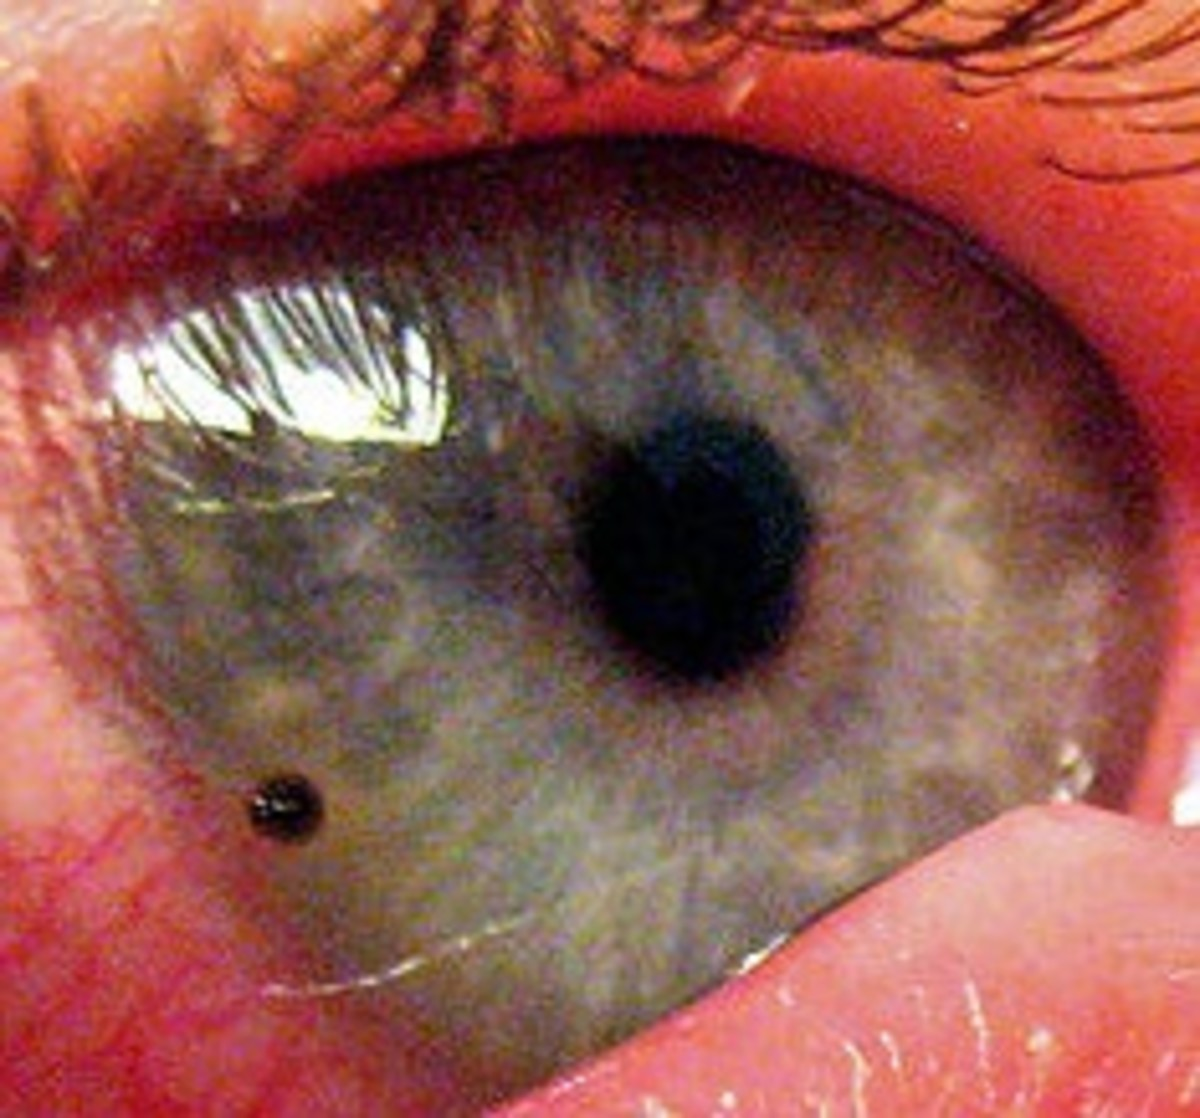 A metallic foreign body embedded in a patient's cornea near the limbus (where the cornea meets the white part of the eye).